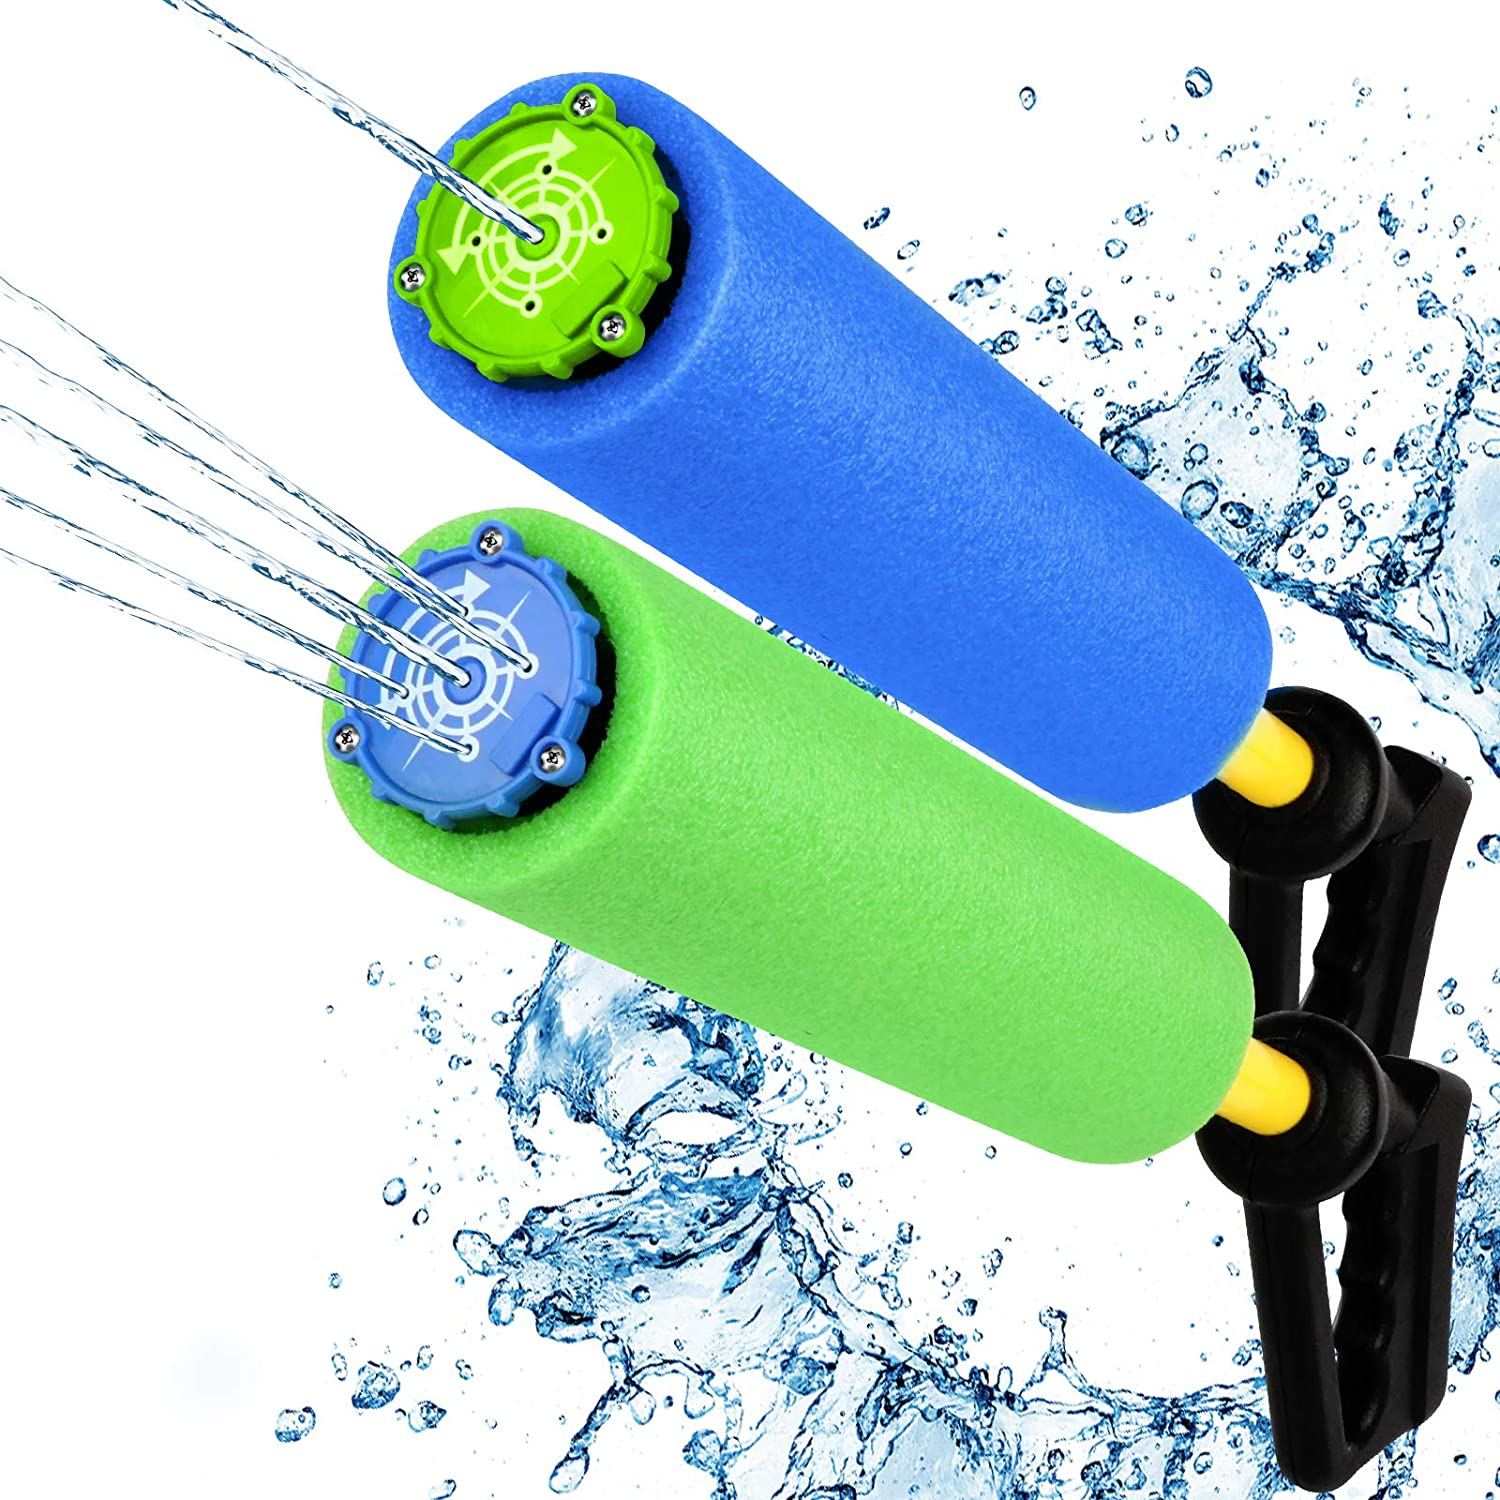 Water Blaster Soaker Gun, Large Sizes 2 Pack Squirt Water Toy for Children & Adults - Two Switchable Squirt Mode with 5 Water Spout for More Fun in Pool, Beach etc. 2 Bright Colors Up to 33 Ft Blast.